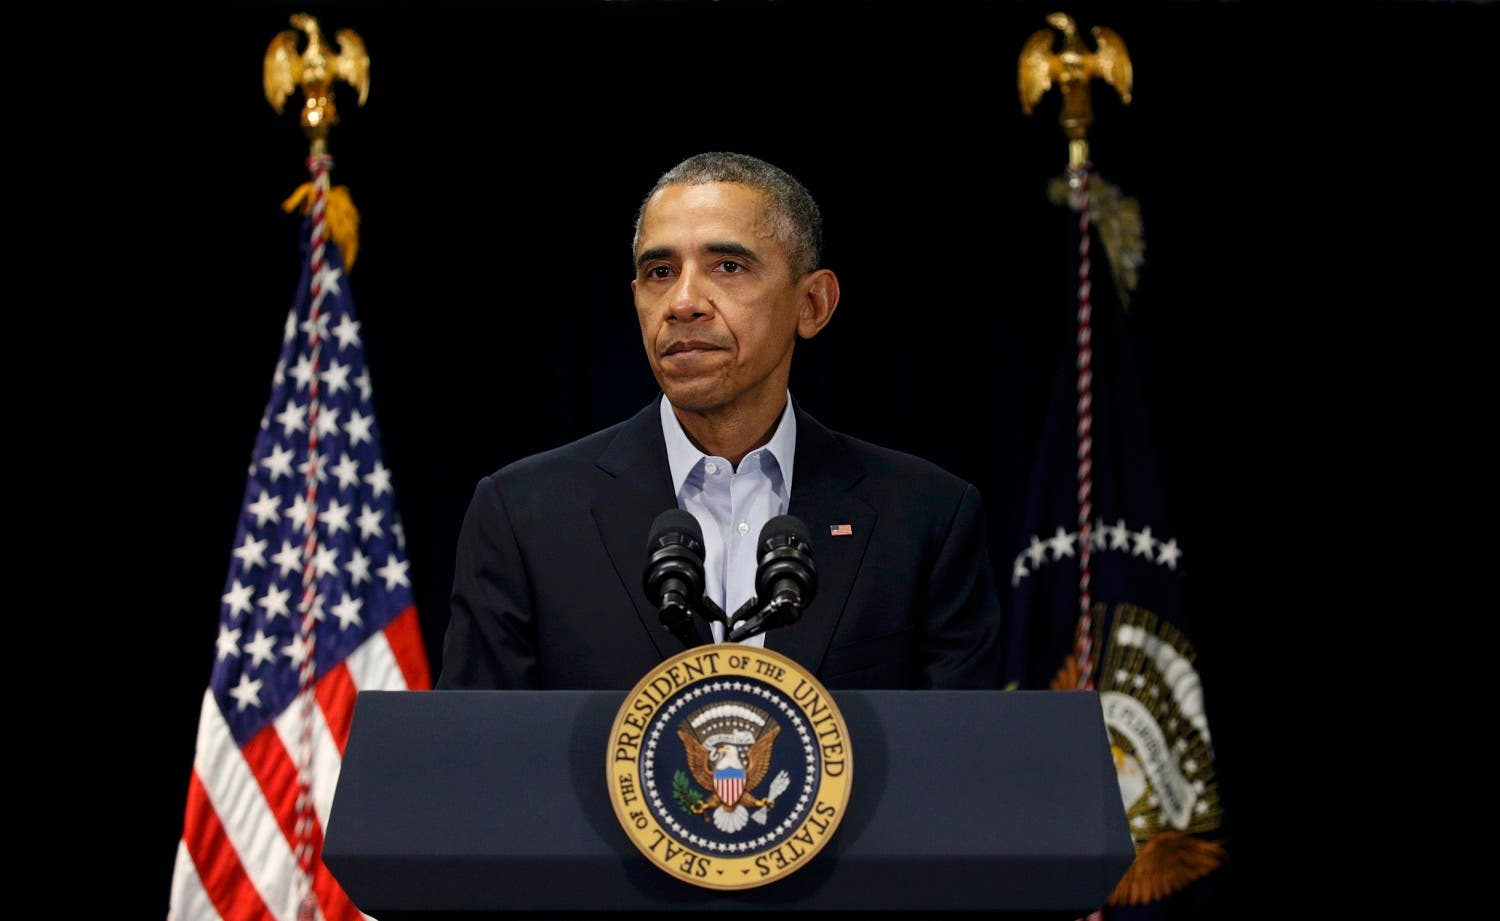 U.S. President Barack Obama speaks about the death of Supreme Court Associate Justice Antonin Scalia during a statement delivered in Rancho Mirage, California February 13, 2016. (Reuters)